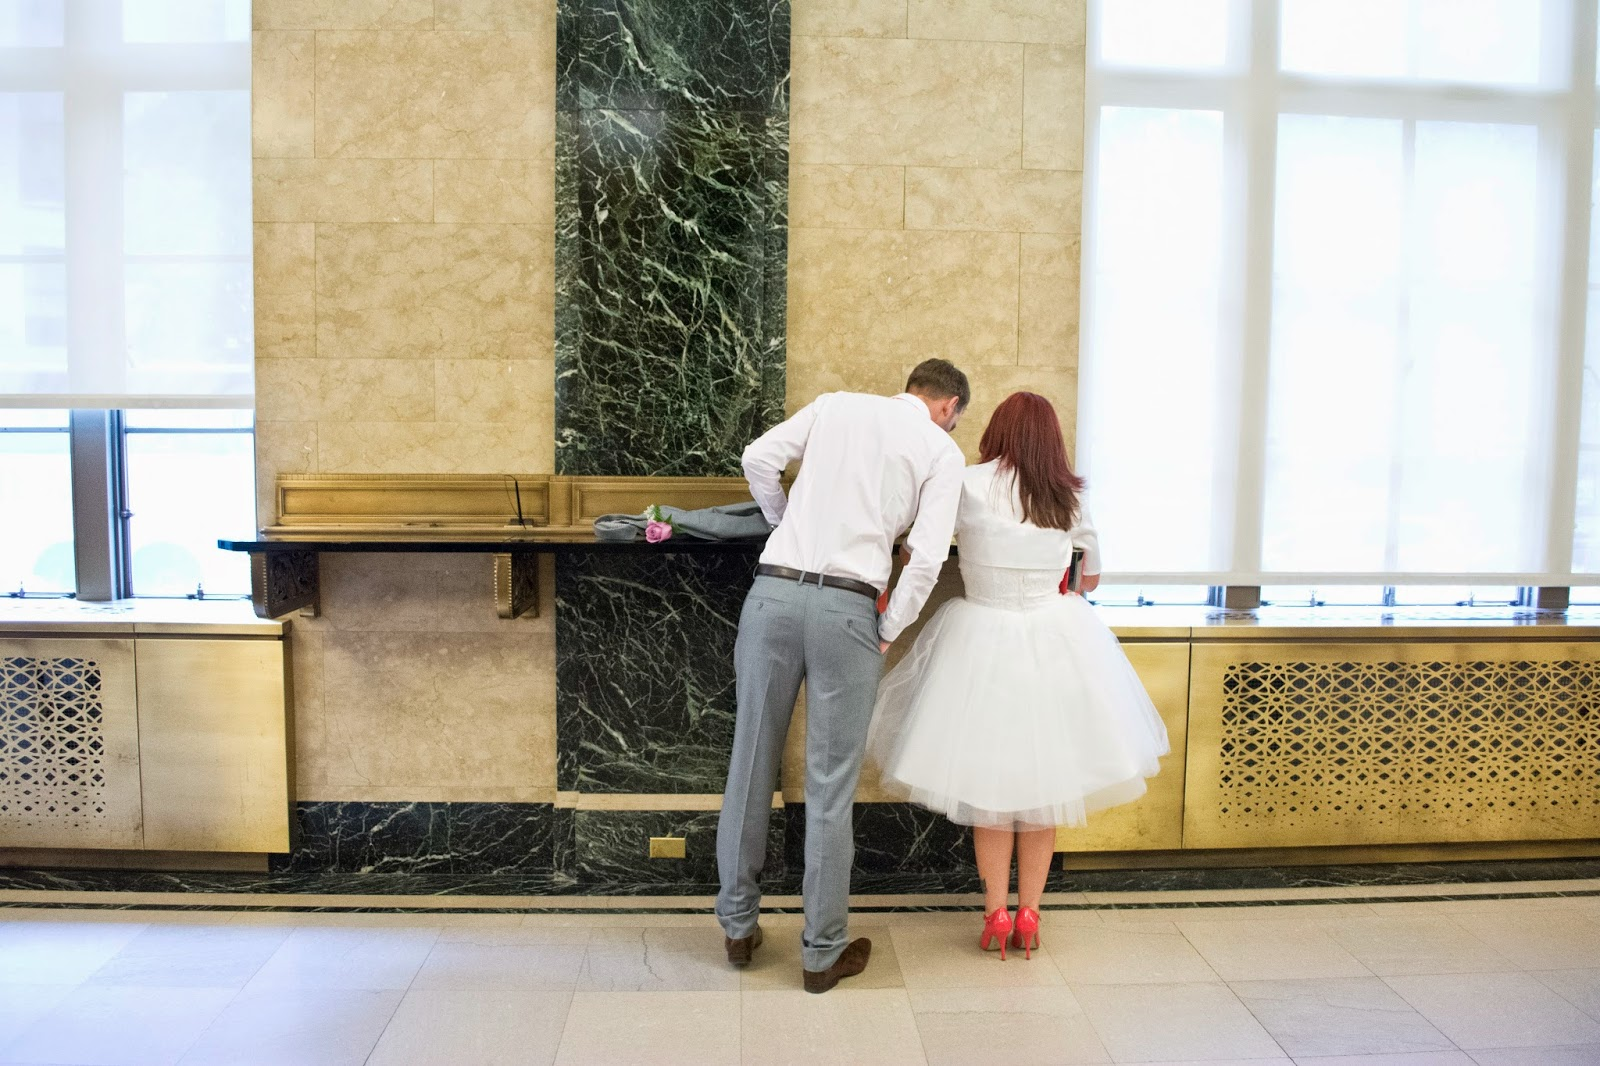 City Hall Wedding and Bouley Wedding Reception shot in NYC with two Israeli grooms visiting NYC to elope shot by Angela Cappetta.